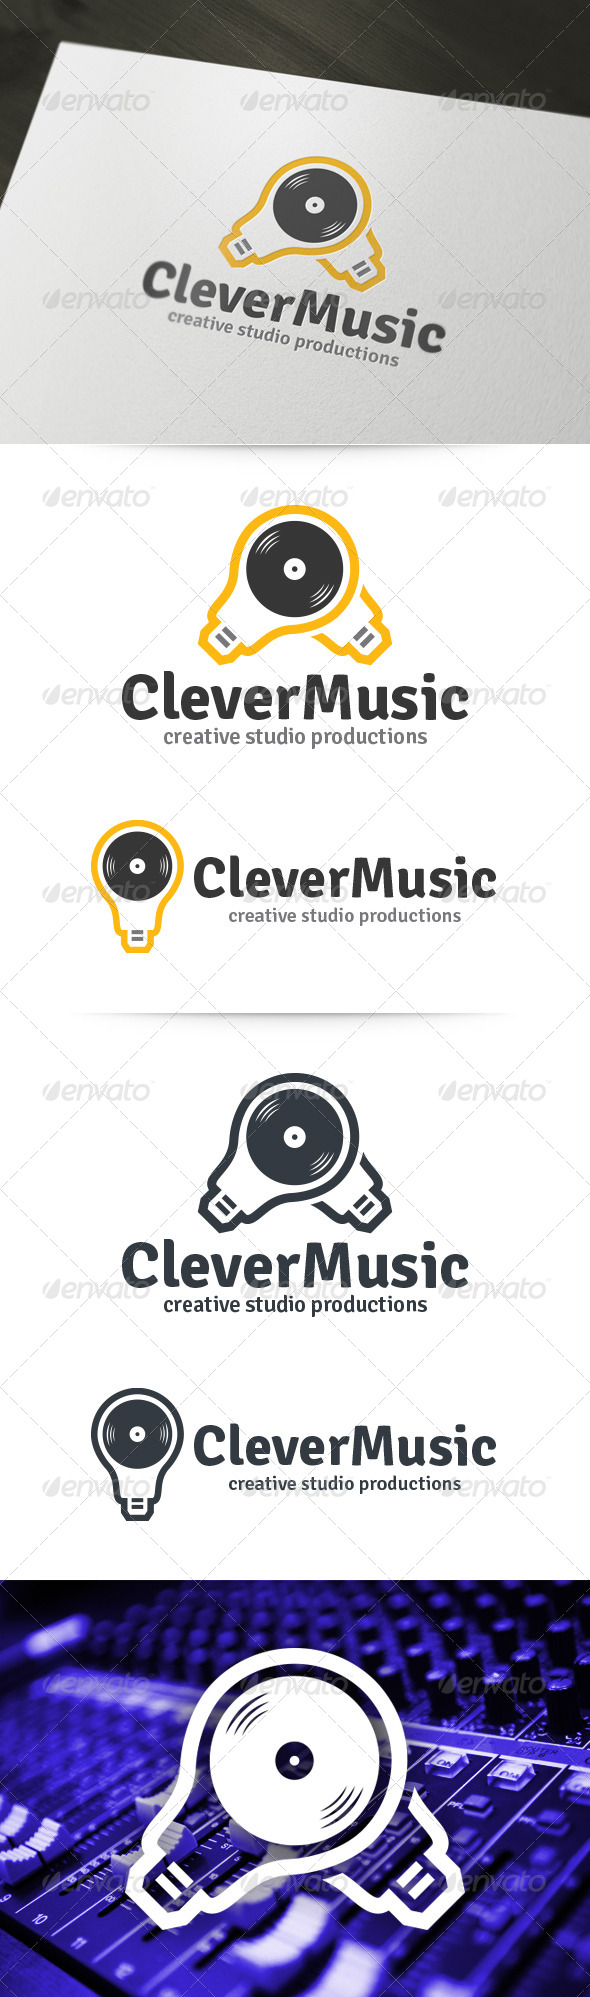 Clever Music Logo